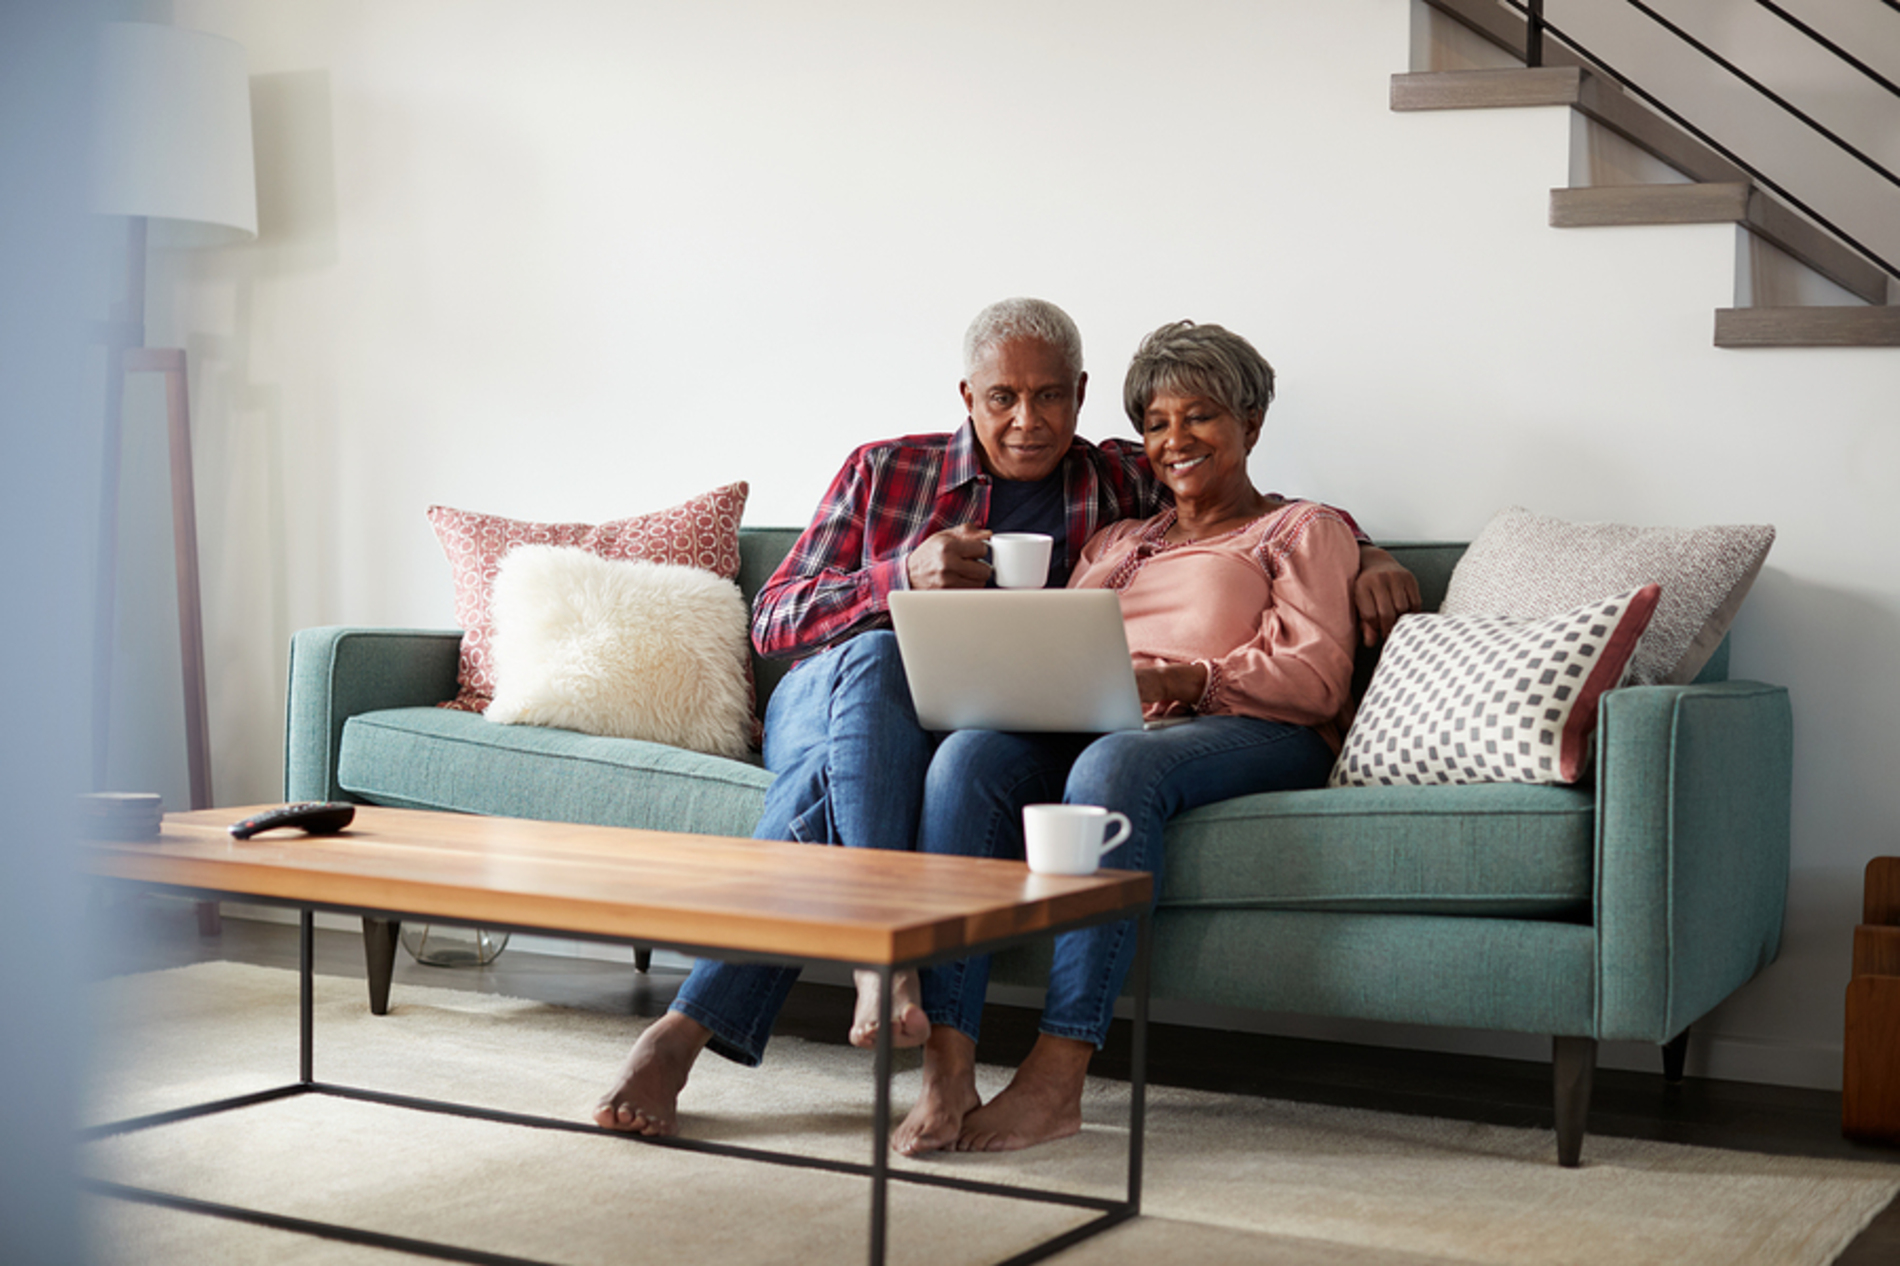 Older couple sitting on a couch looking at a laptop.